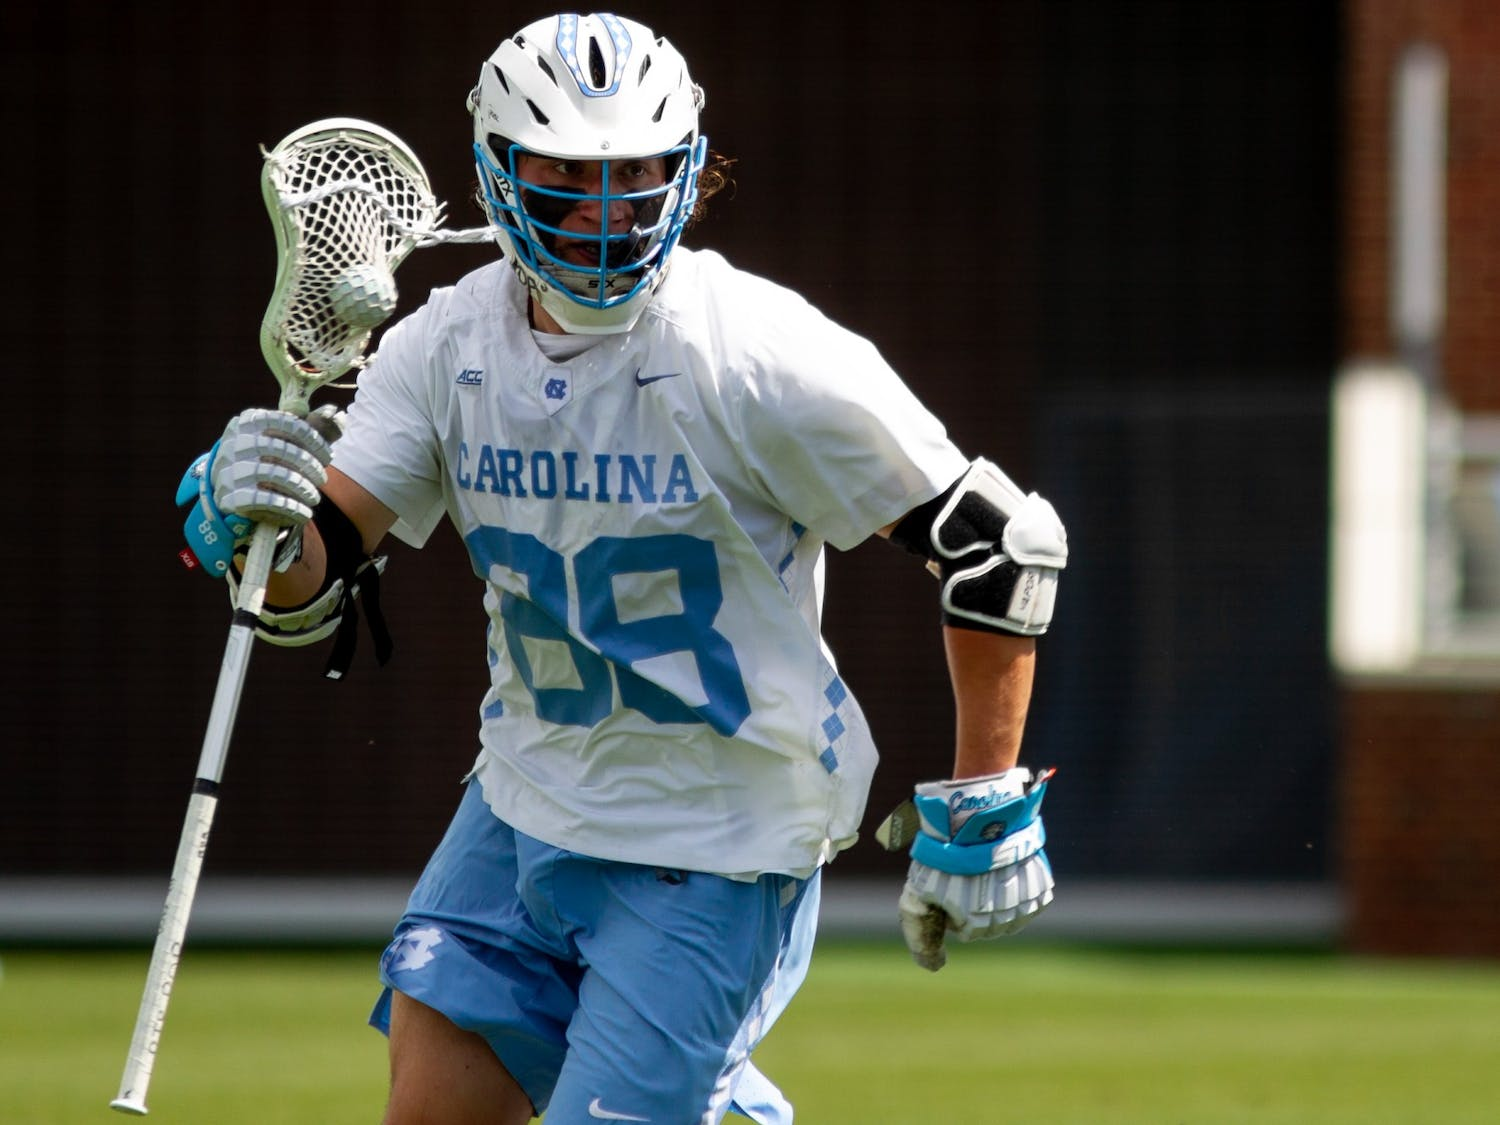 UNC sophomore defensive midfielder Alex Breschi (88) goes on the attack during an 18-16 loss to UVA at Dorrance Field on April 10, 2021.